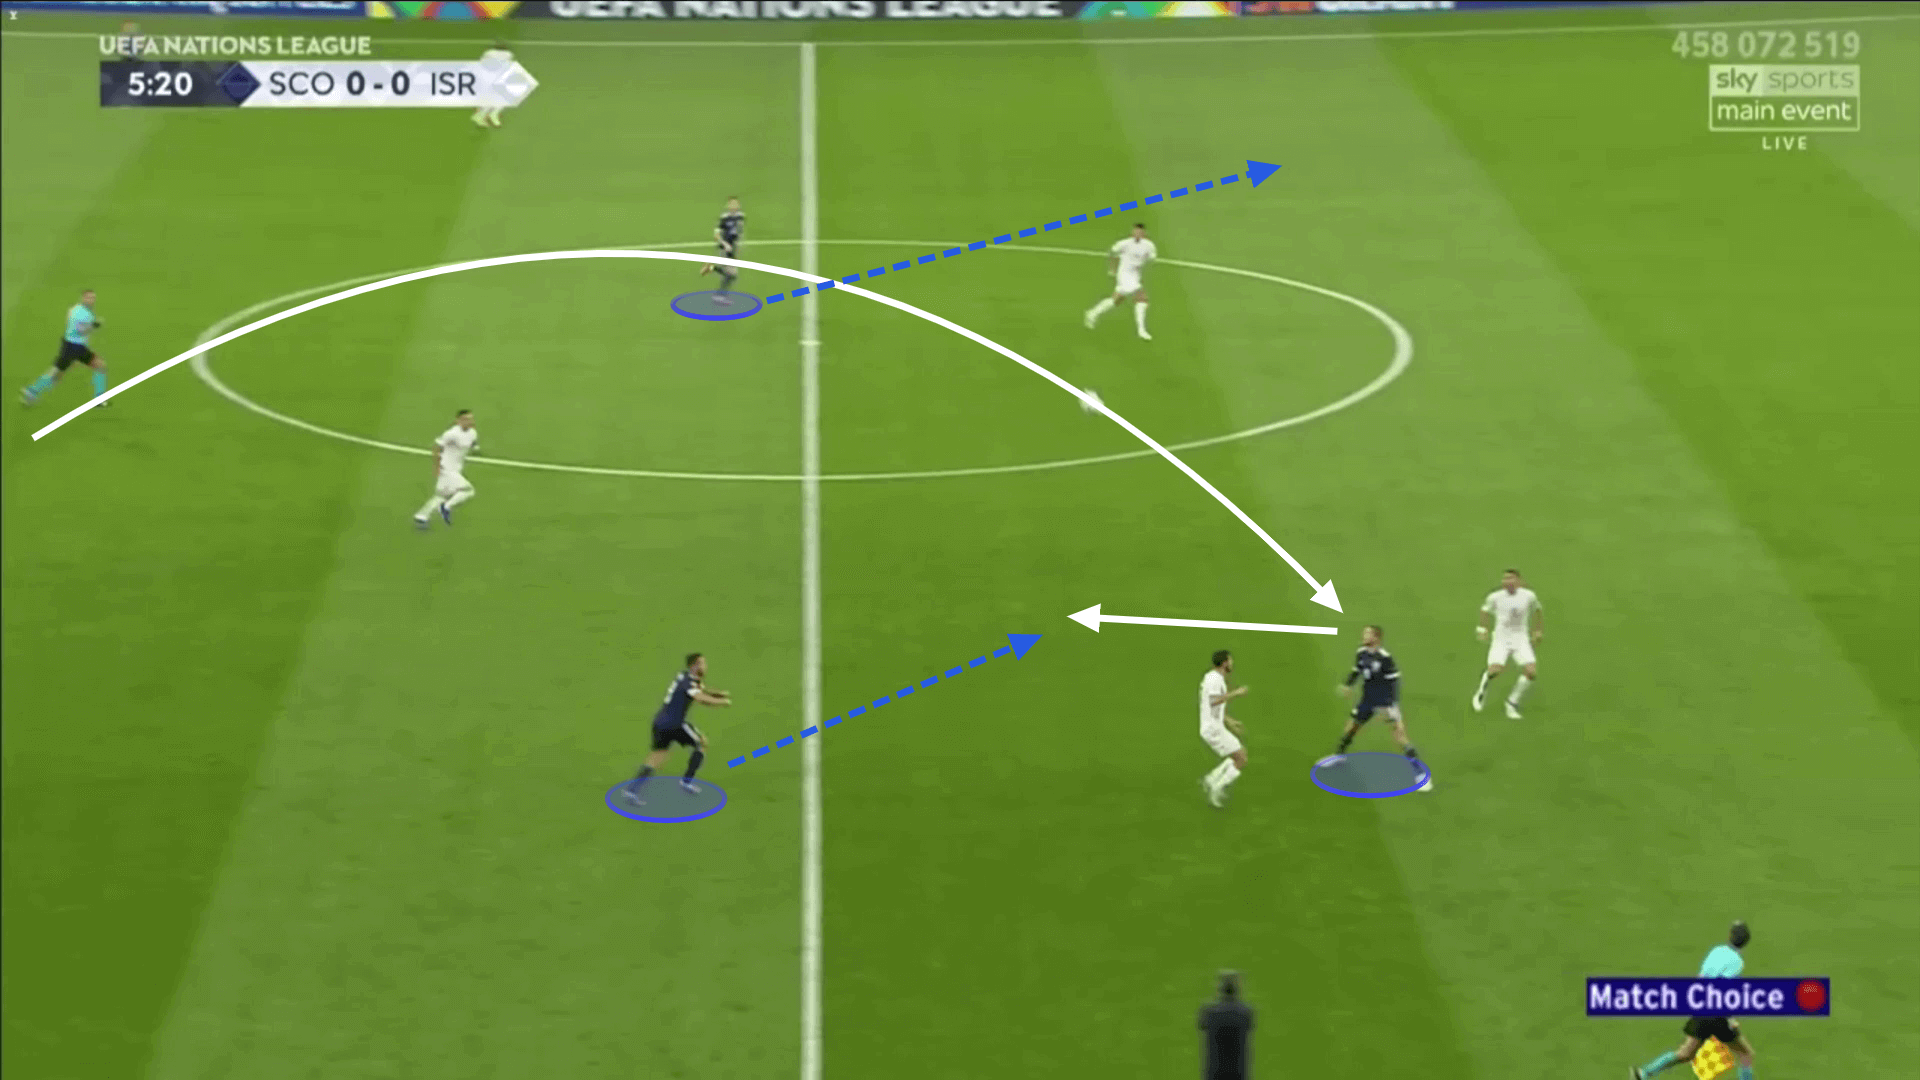 UEFA Nations League: Scotland v Israel - tactical analysis - tactics